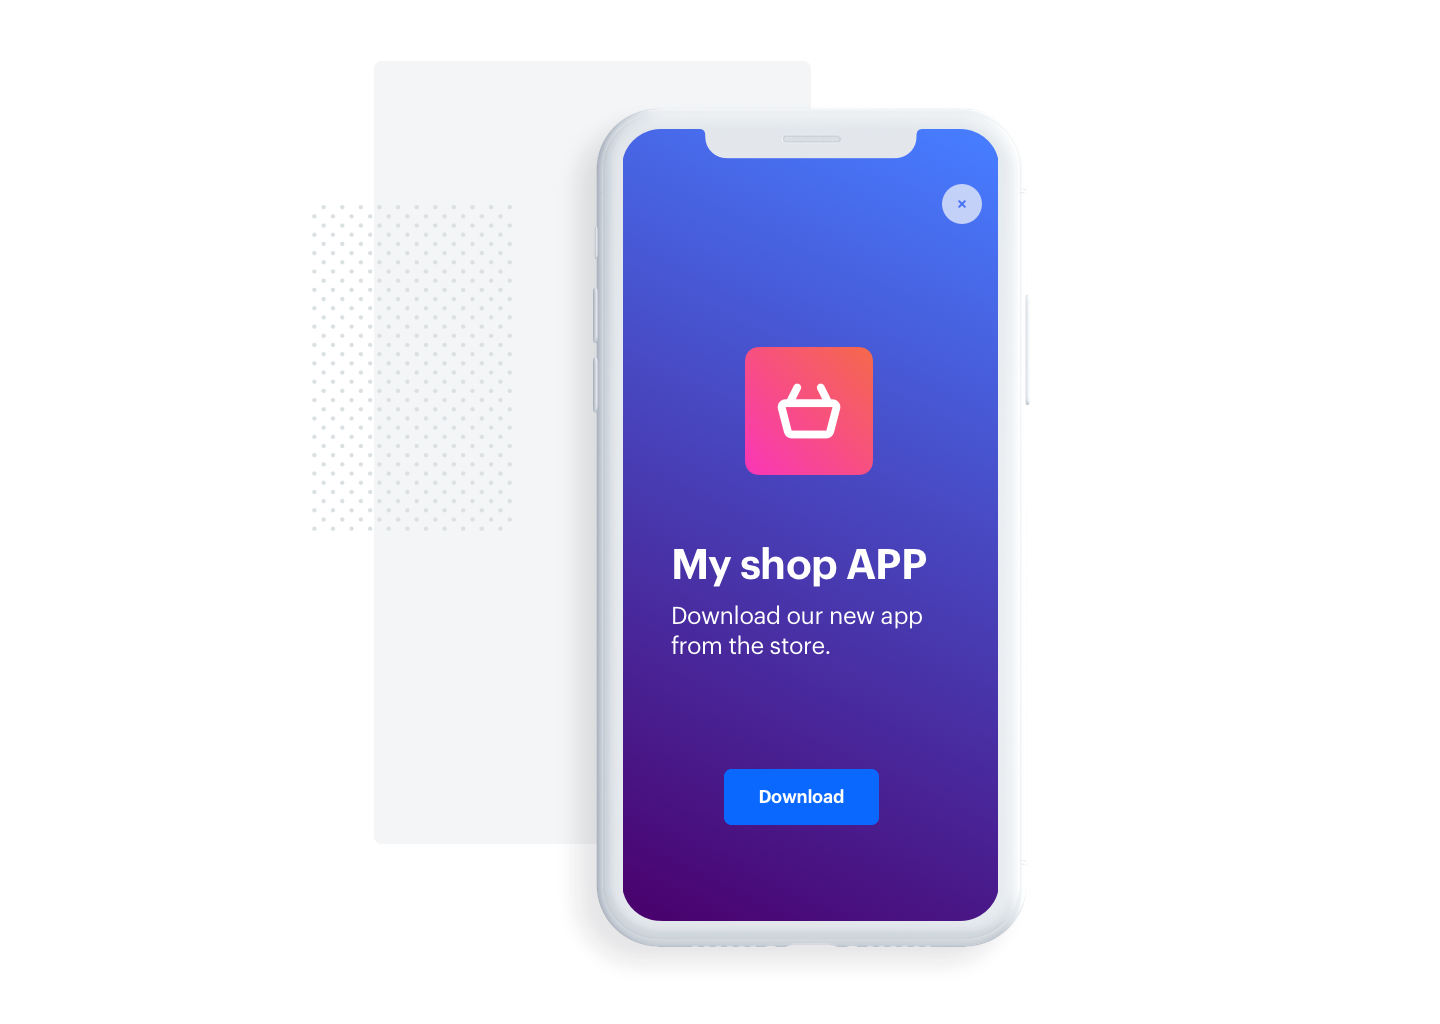 Screenshot presenting how to encourage customers to download the app